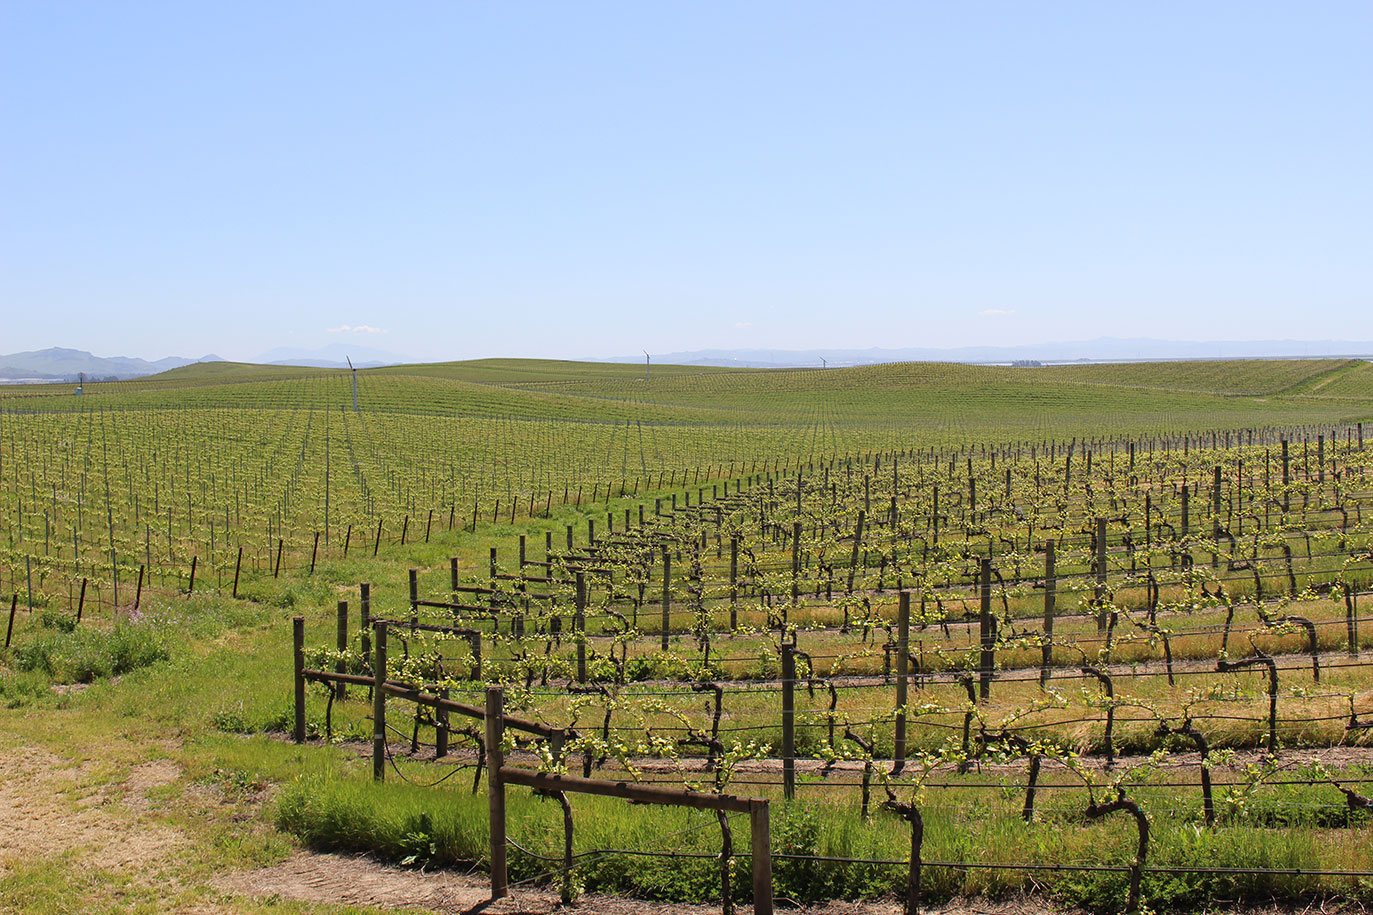 Los Carneros, Coombsville and Downtown Napa